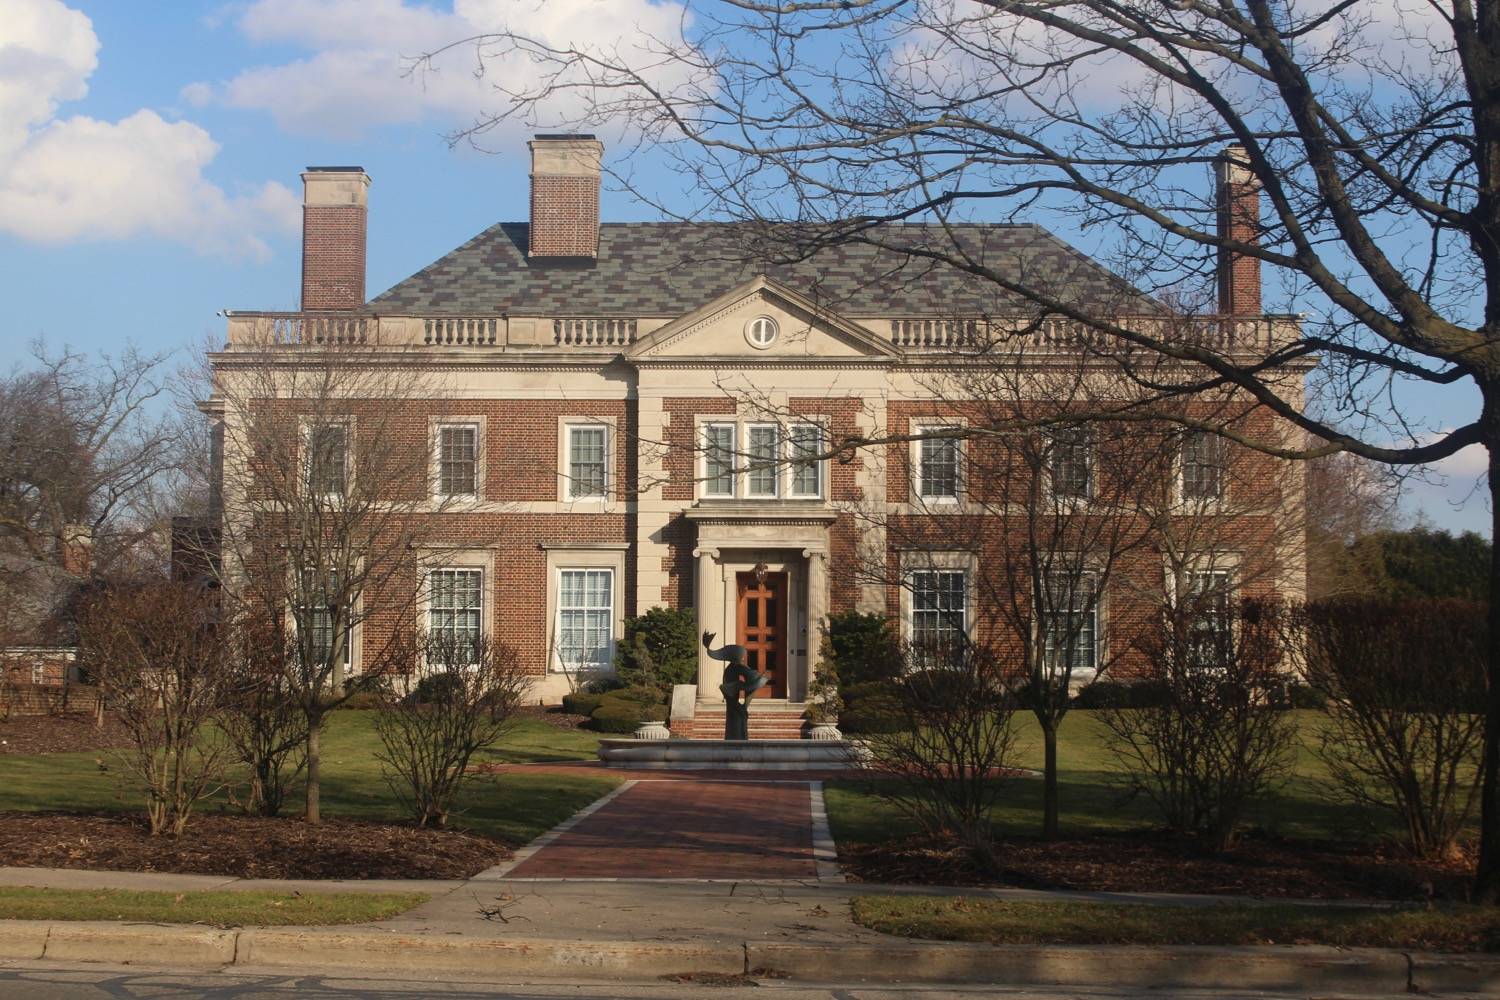 BUTTERBALL MANSION CLASSICAL REVIVIAL PLYMOUTH.jpg